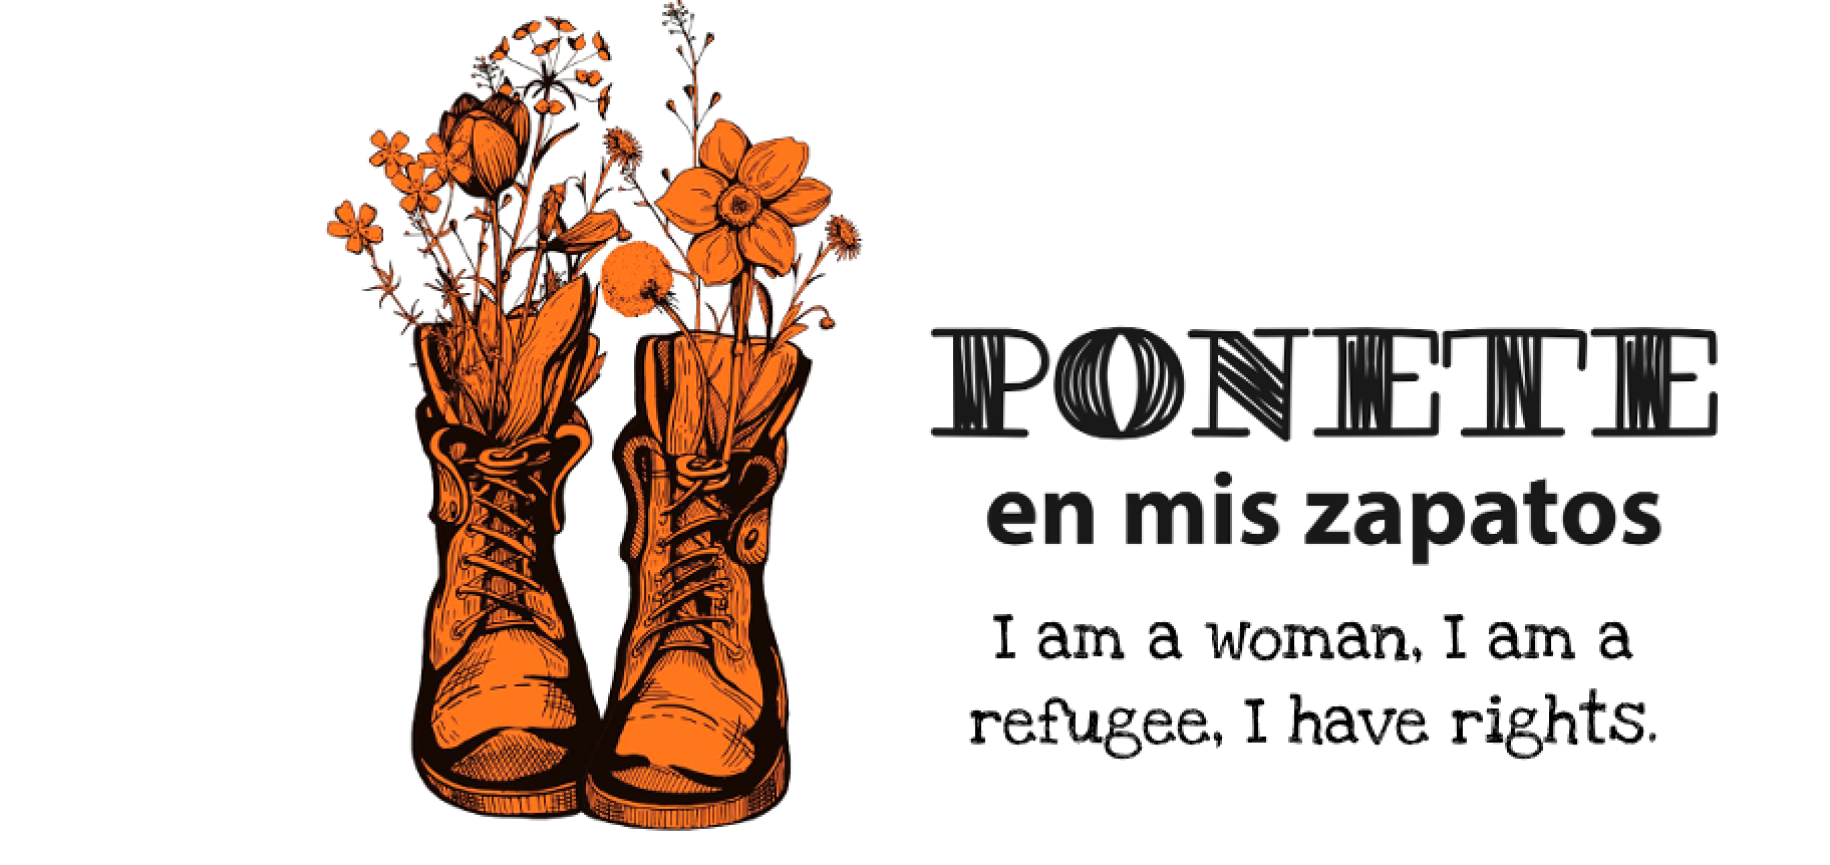 The Ponete en Mis Zapatos logo shoes a pair of orange boots with flowers.